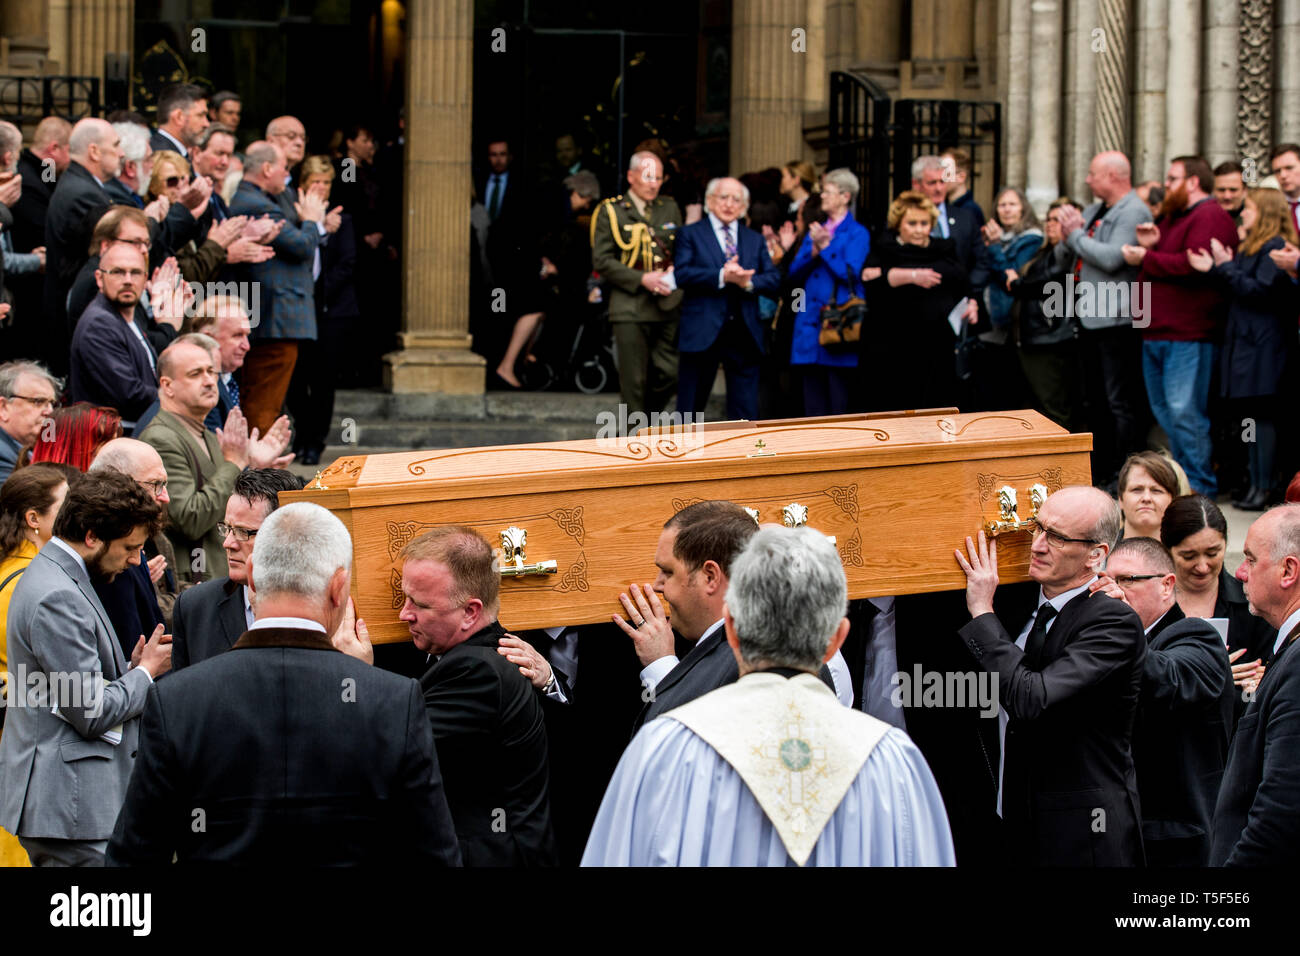 Members of the NUJ provided a guard of honour and applaud as a mark of respect as the remains of murdered journalist Lyra McKee leaves St Anne's Cathedral, Belfast after her funeral. - Stock Image